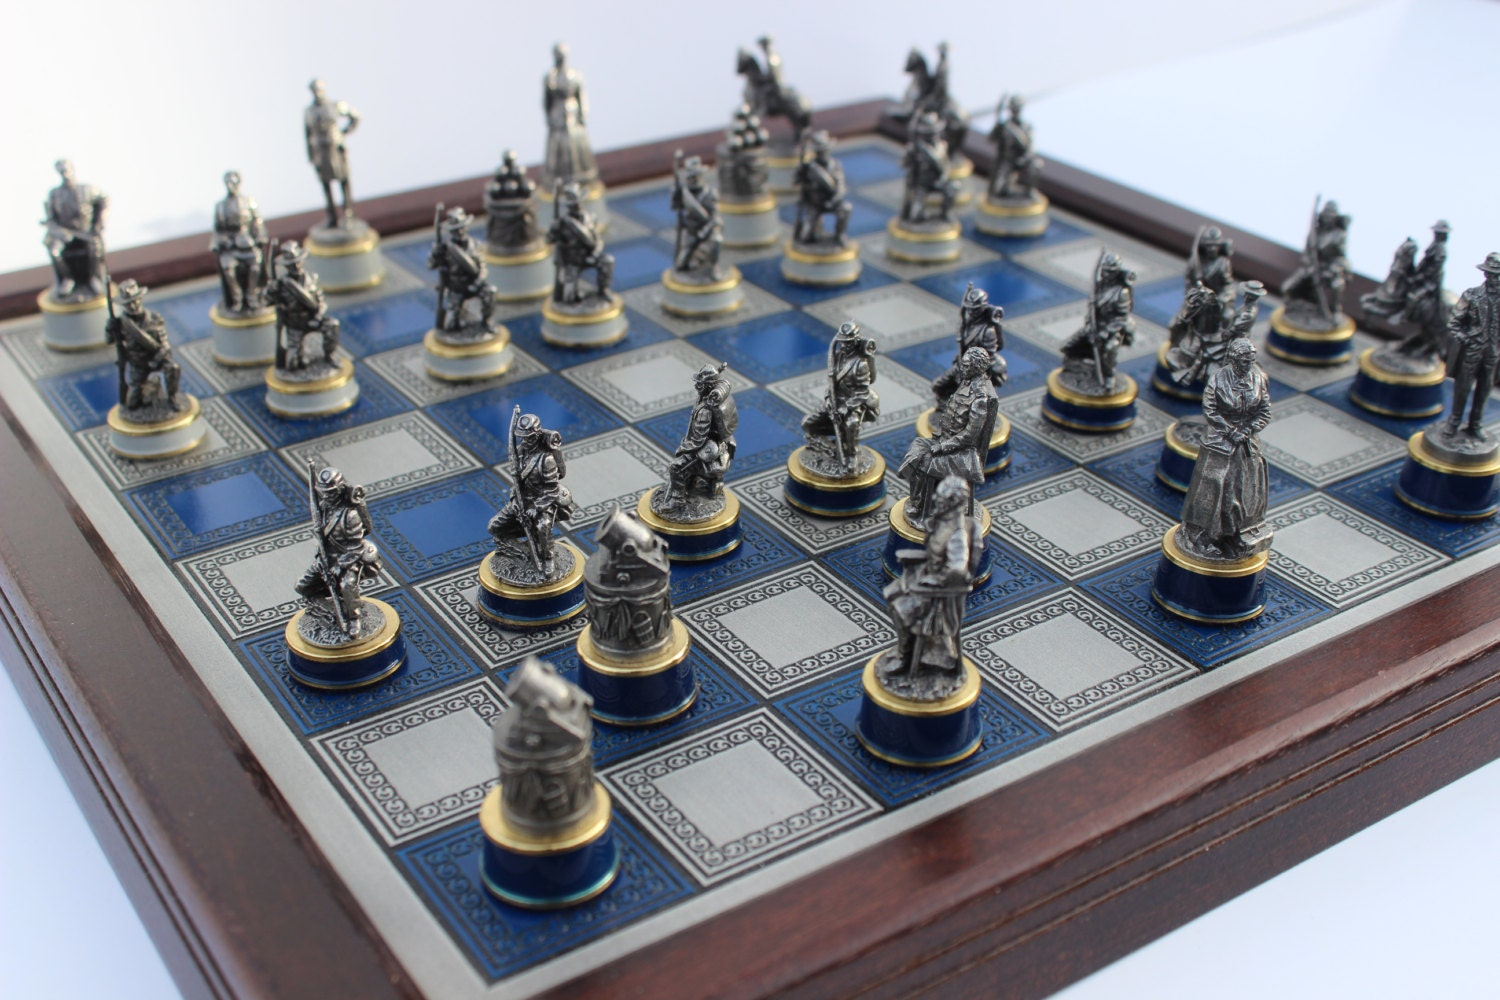 Civil war chess set pewter franklin mint 1980 39 s - Collectible chess sets ...